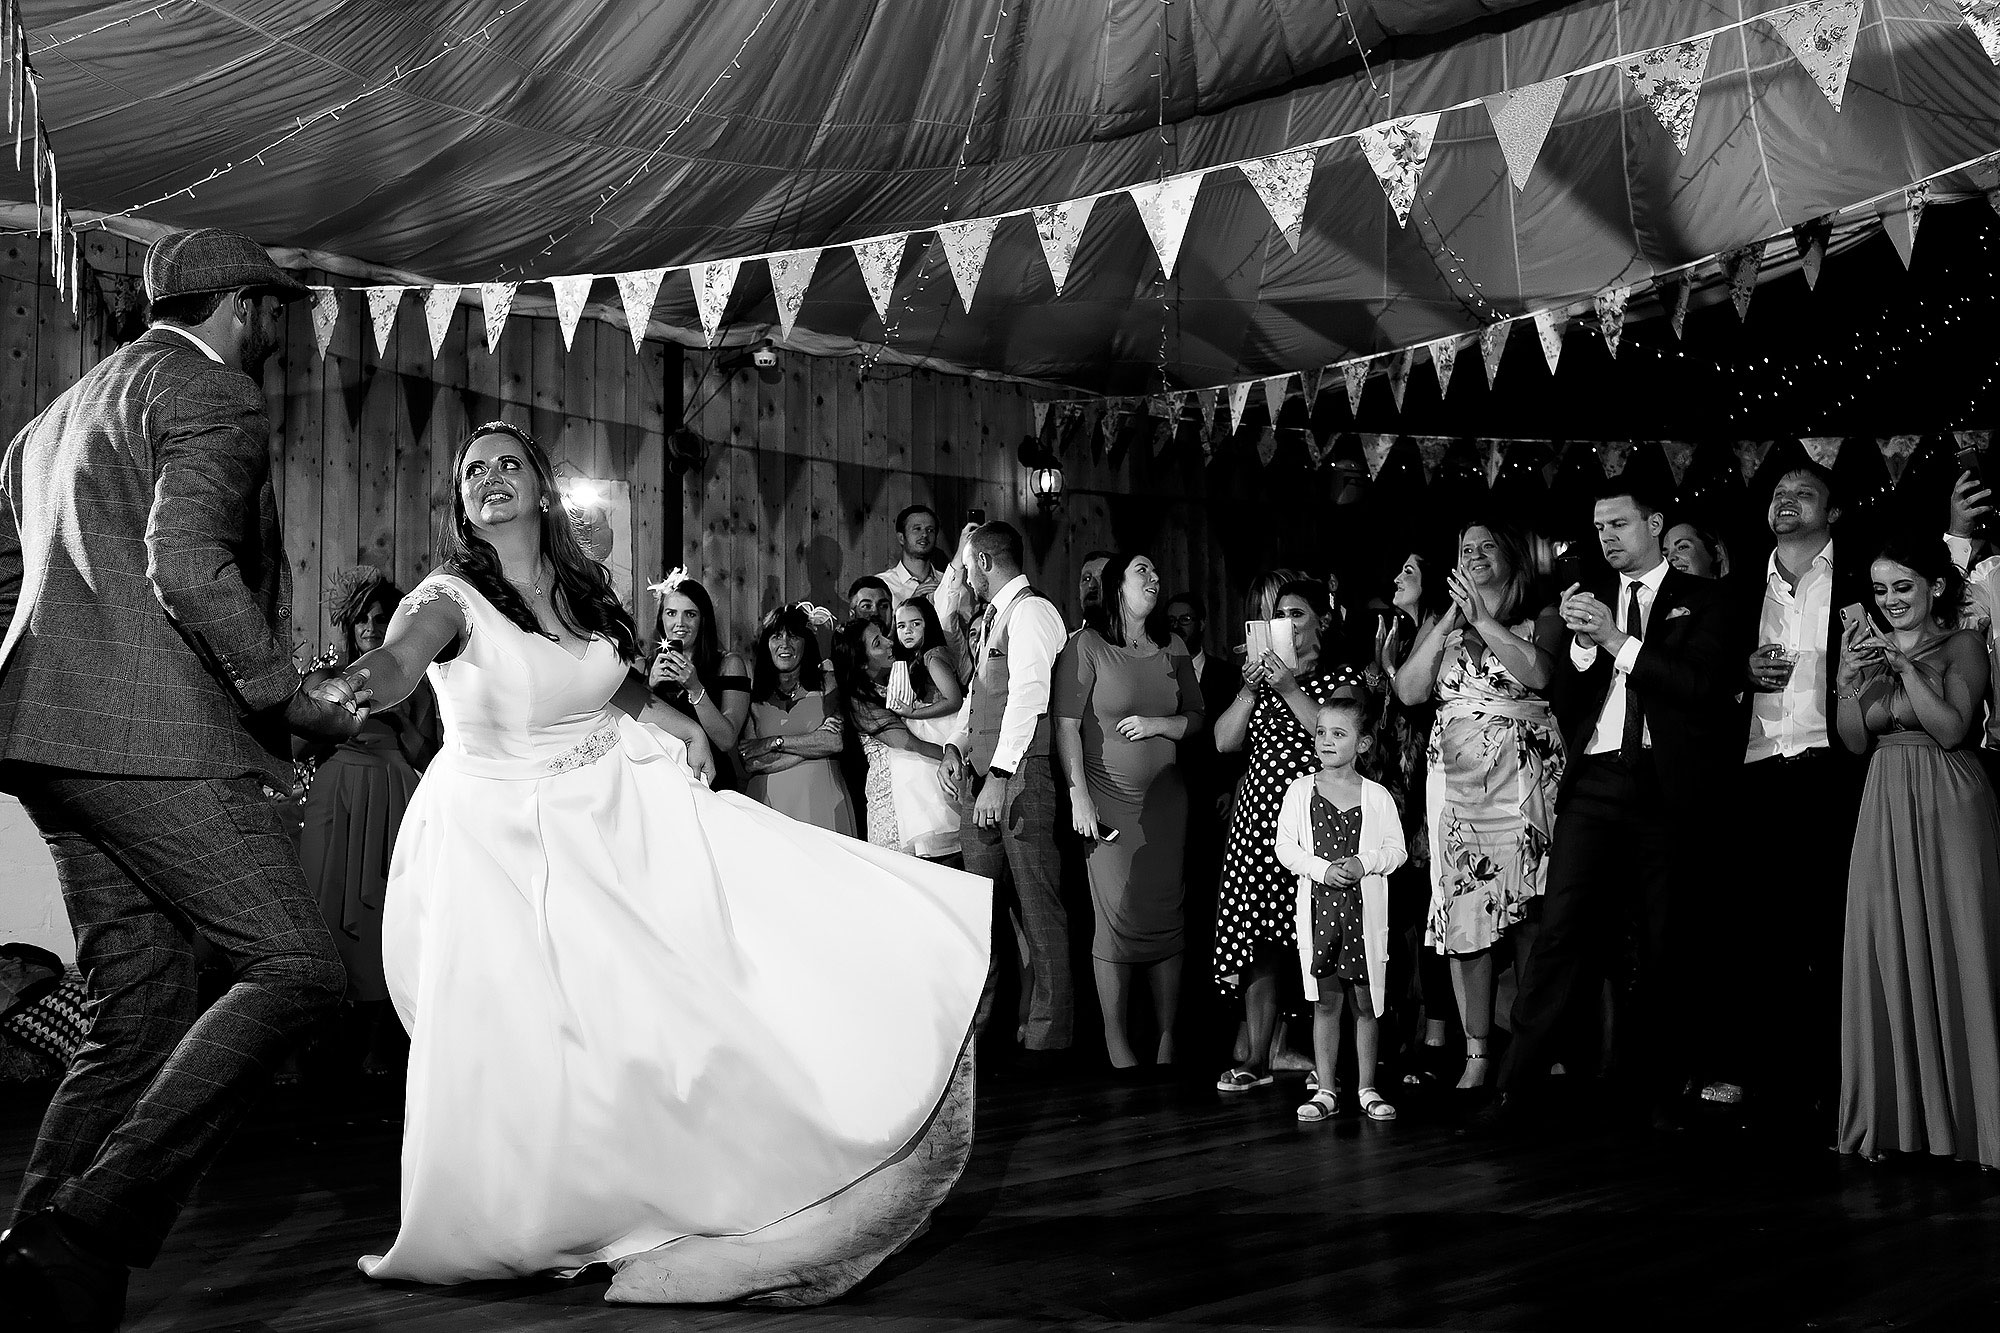 Bride twirling wedding dress as her groom spins her round the dance floor during the first dance | Wellbeing Farm wedding photographs by Toni Darcy Photography